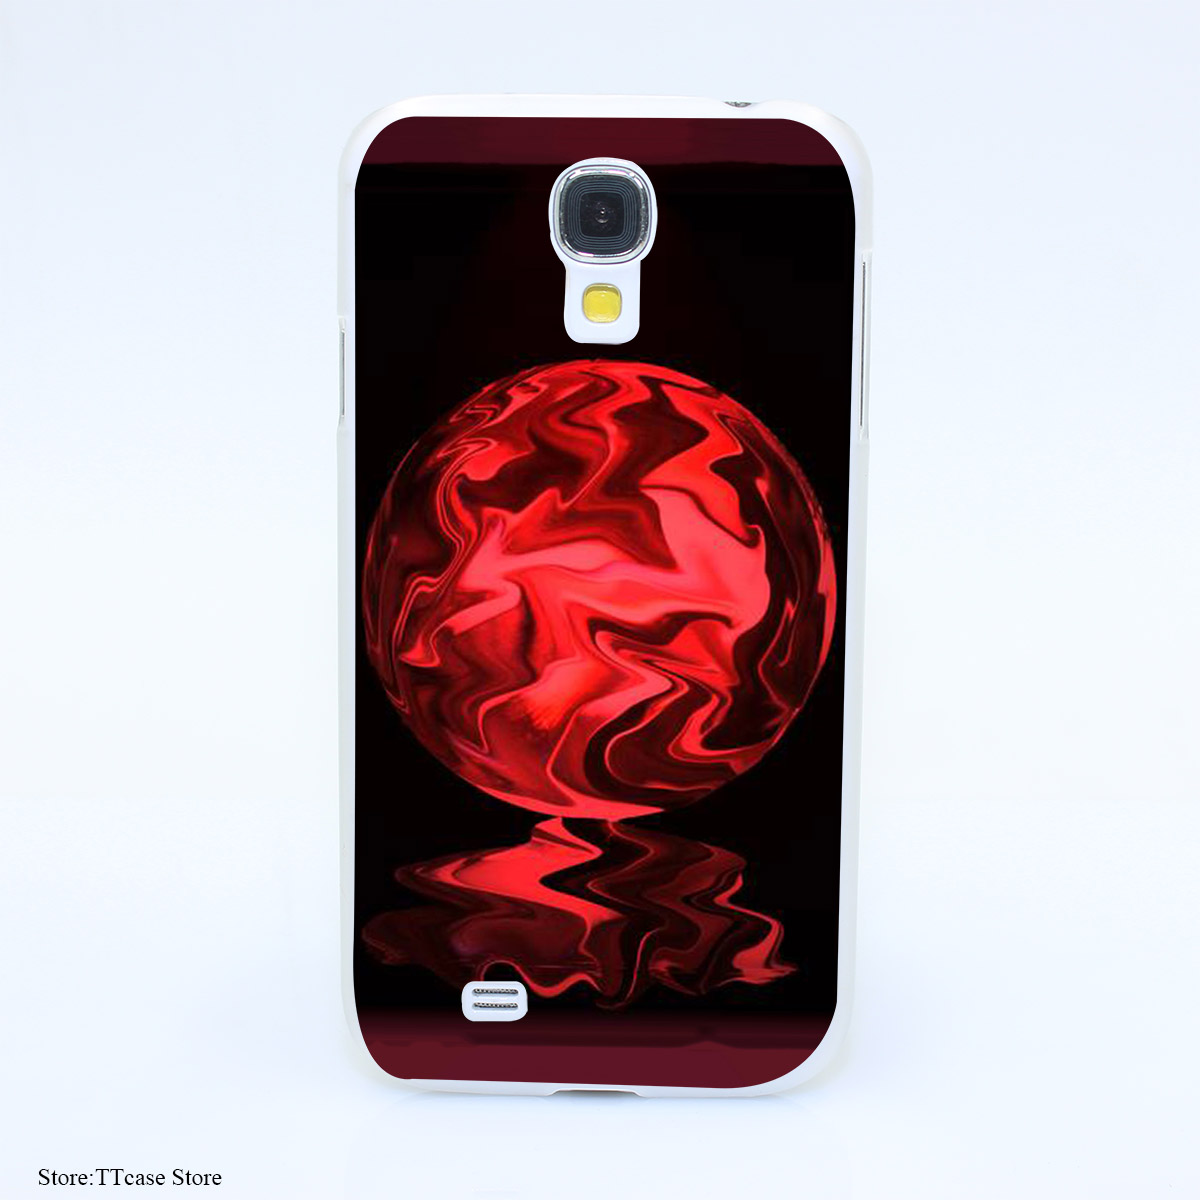 2011CA Leaking Crystal Ball Hard Transparent Case Cover for Galaxy S2 S3 S4 S5 & Mini S6 S7 & edge Plus(China (Mainland))